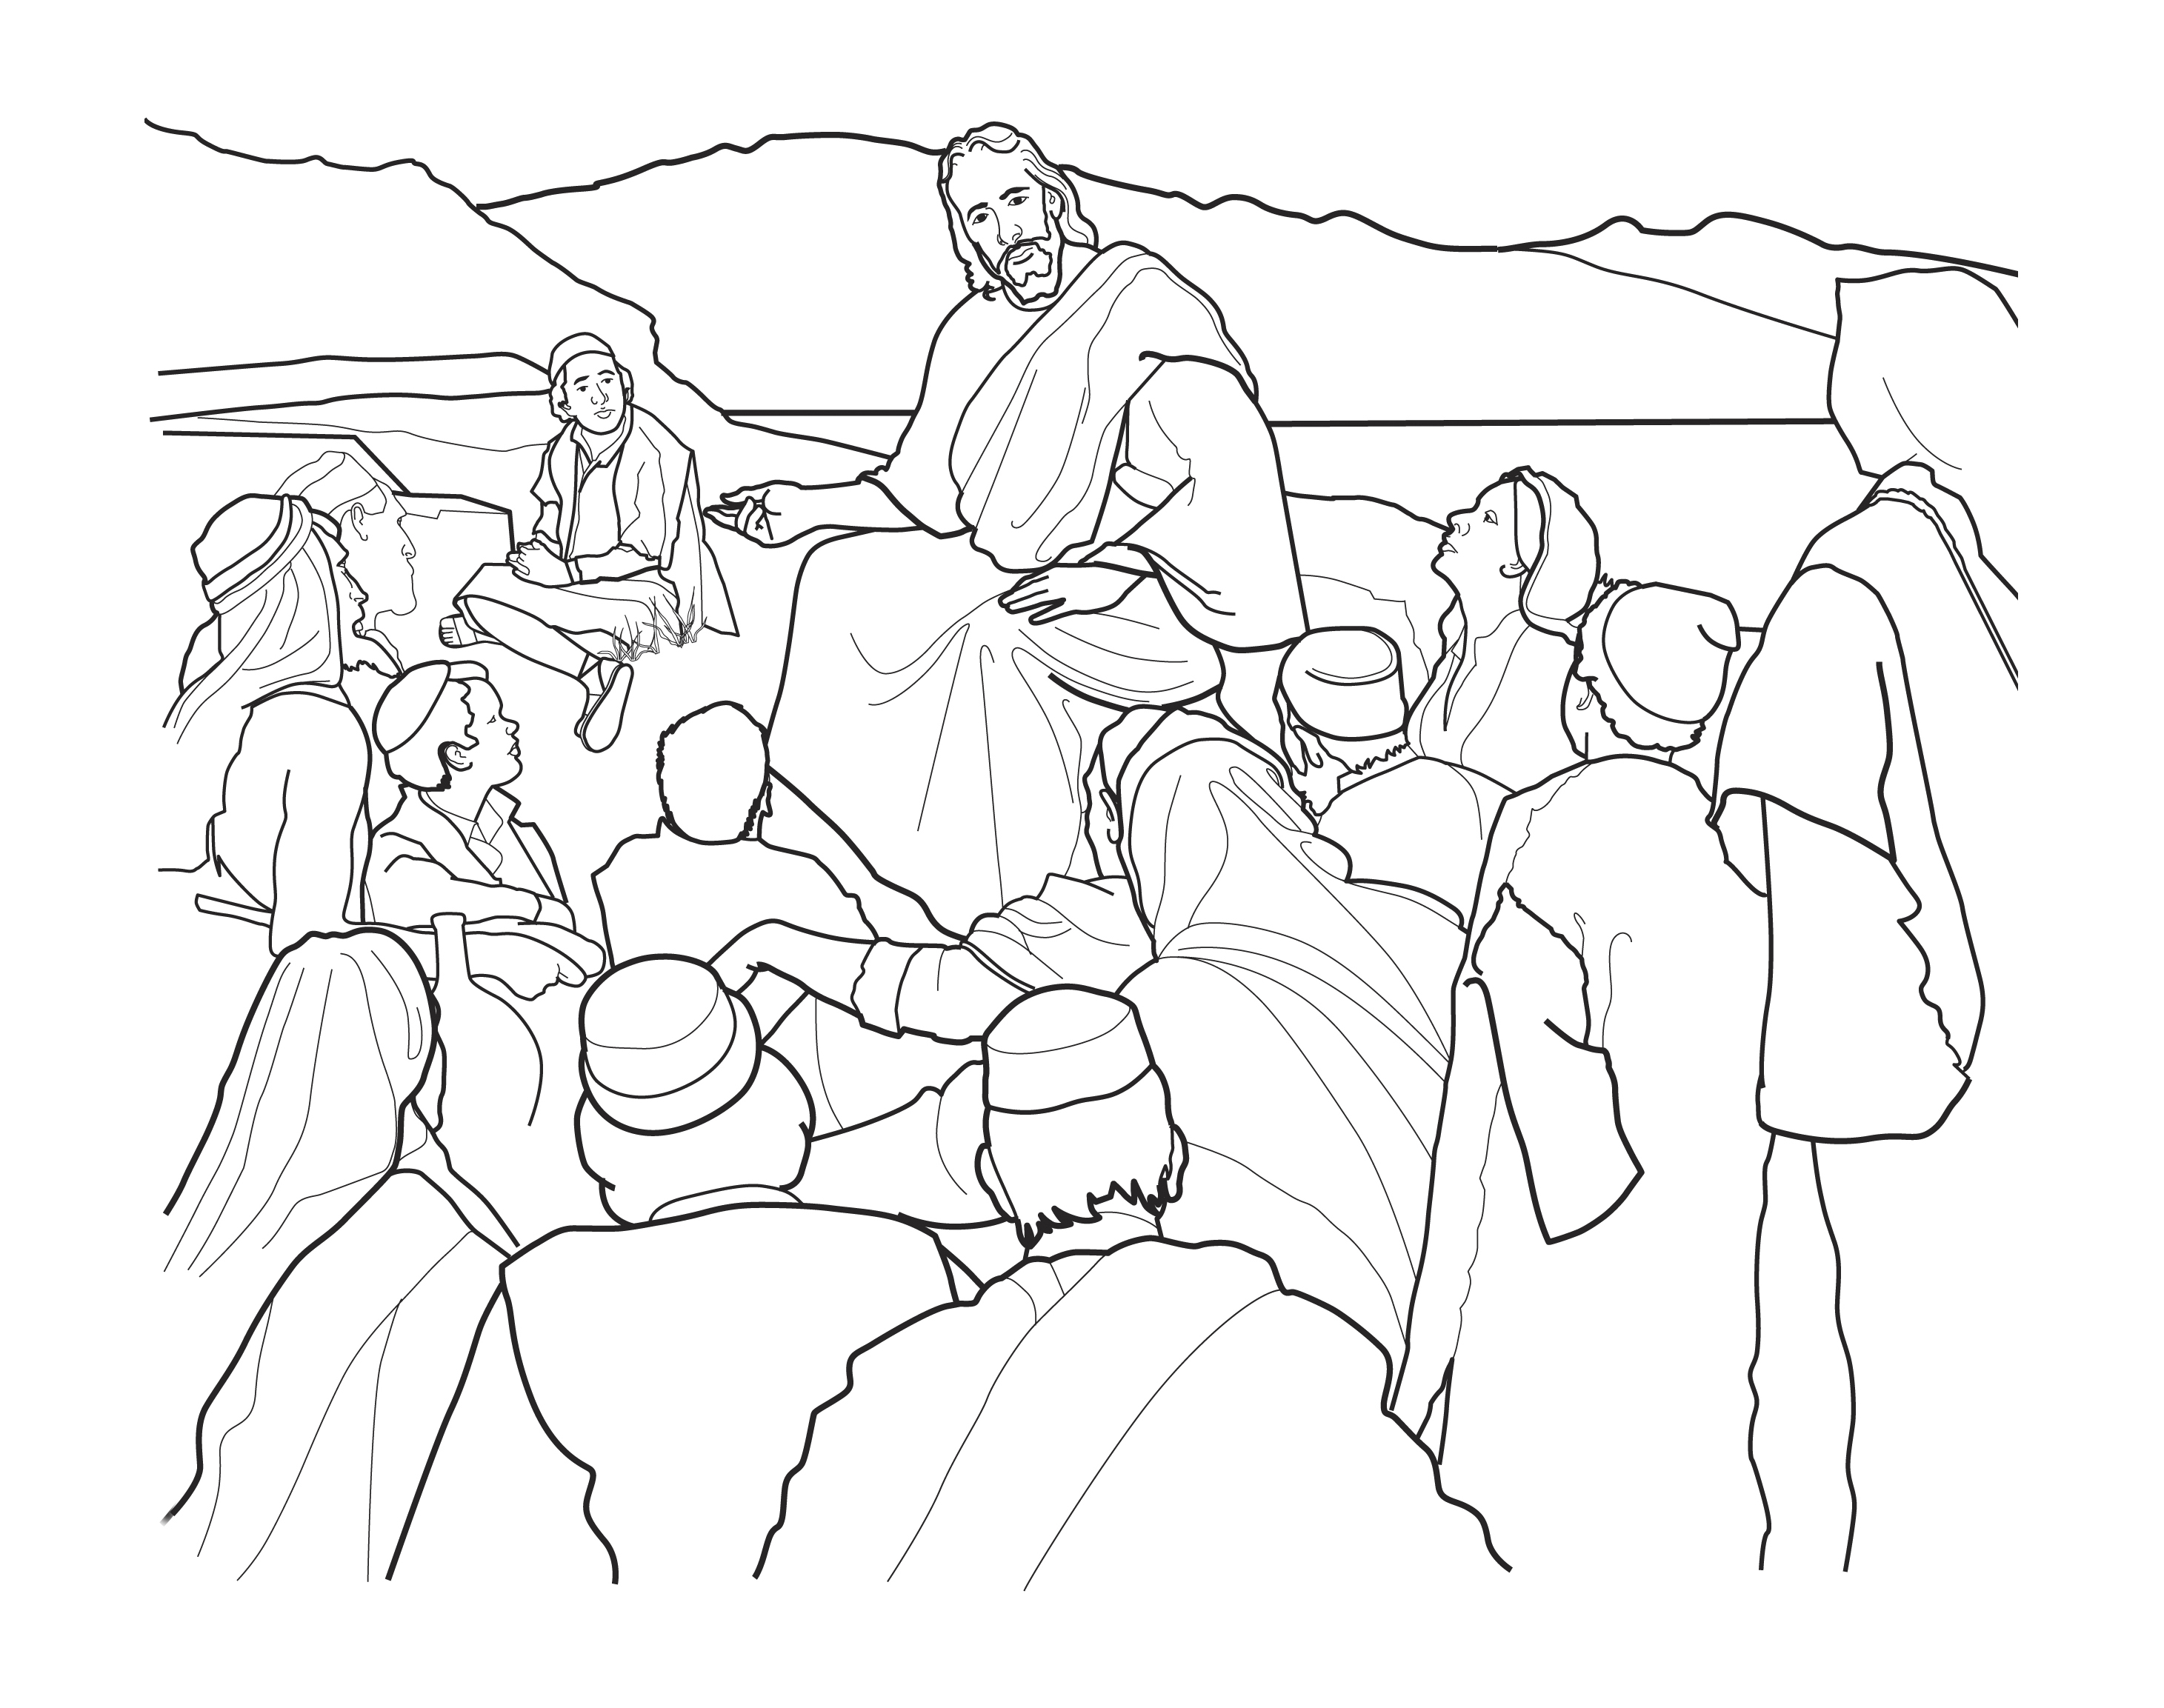 A sketch of the Sermon on the Mount, based on the painting by Harry Anderson.